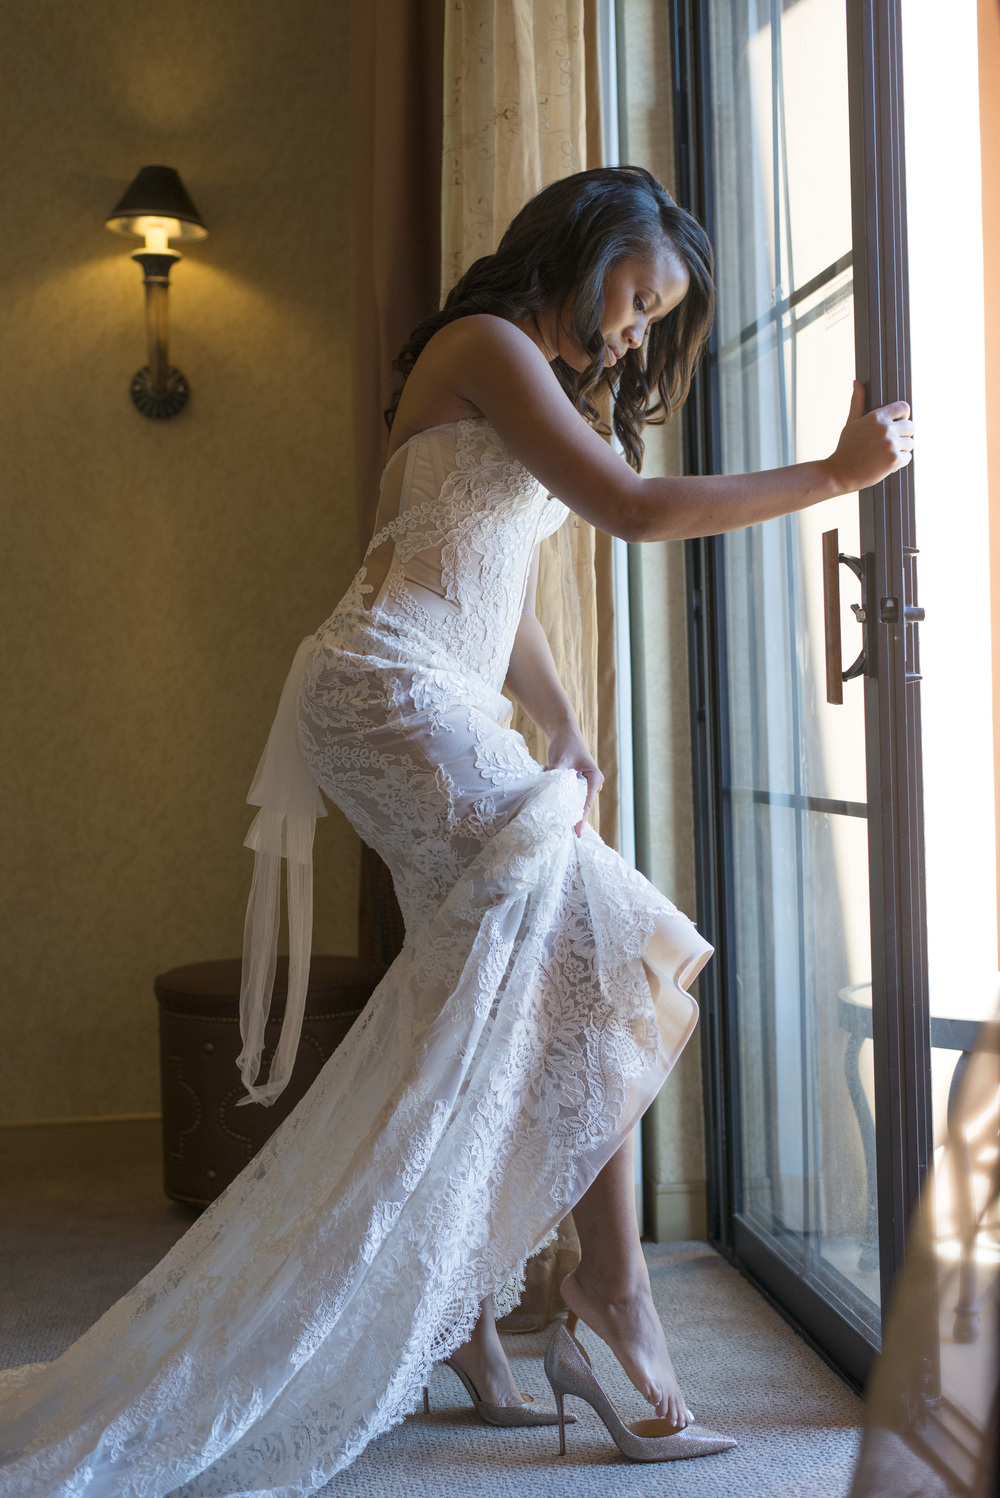 Corset Back P'Nina Tornai Wedding Dress from Kleinfeld.     Vendor Credits: Las Vegas Wedding Planner:  Andrea Eppolito Events |  Photography:  Altf Photography  |  Wedding Gown: P'Nina Tornai  |  Veil: Kleinfeld New York  |  Shoes:  Christian Louboutin  |  Tuxedo:  Men's Warehouse